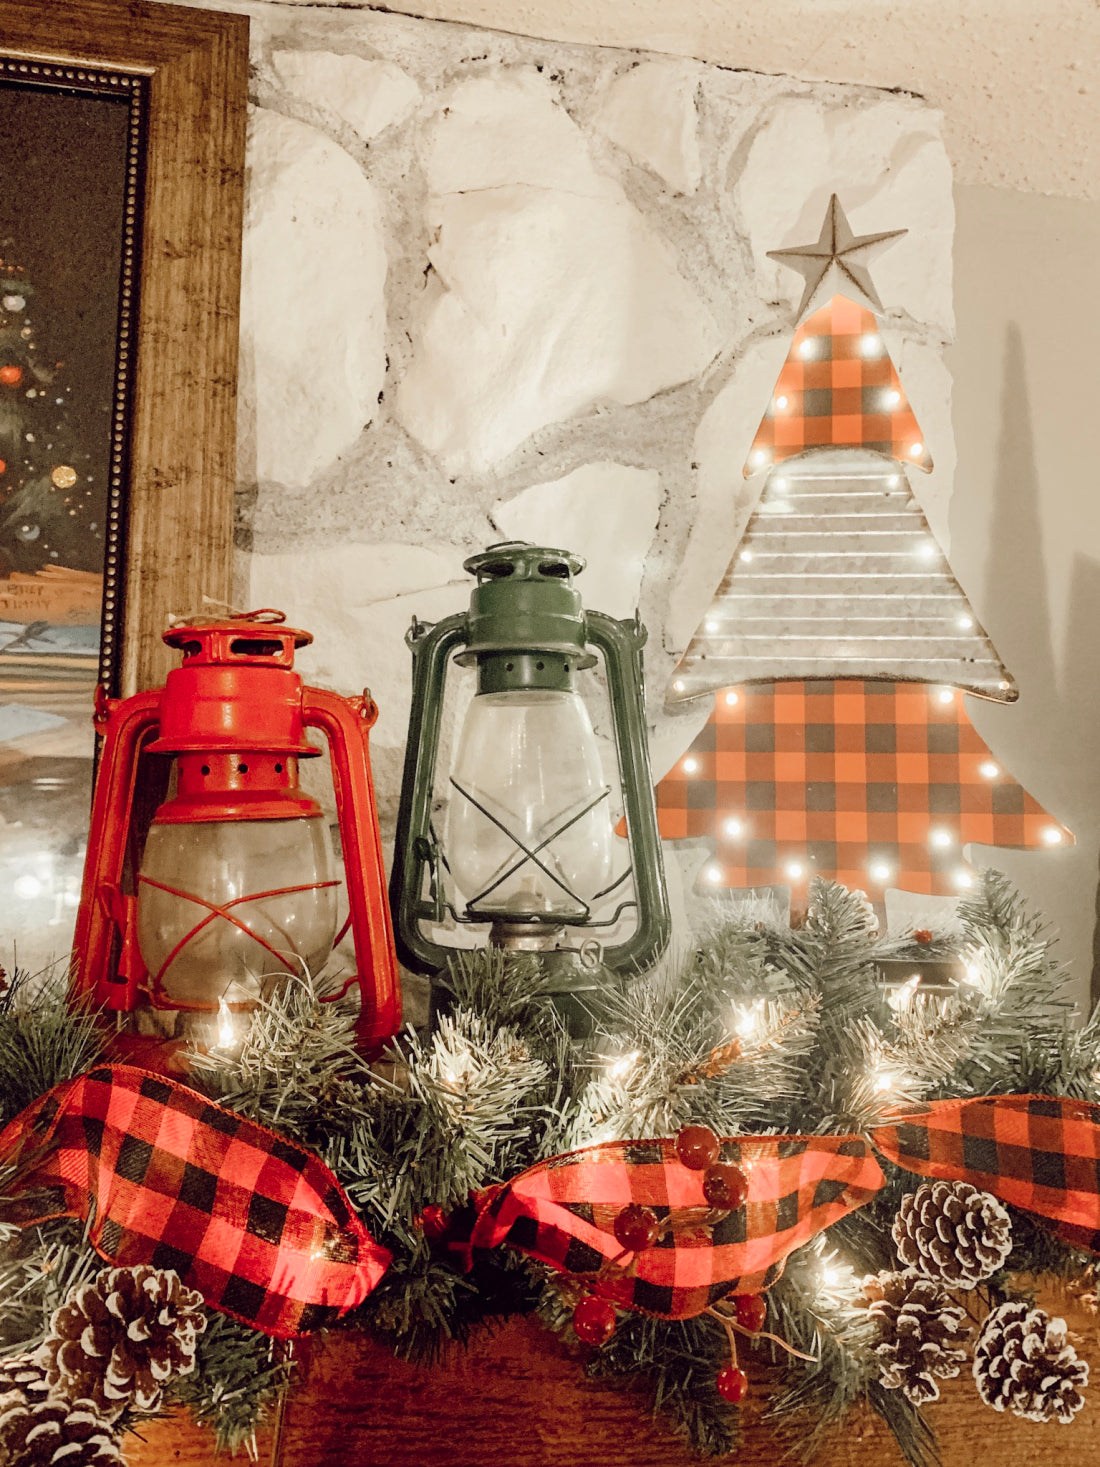 lanterns add an extra touch to this holiday fireplace